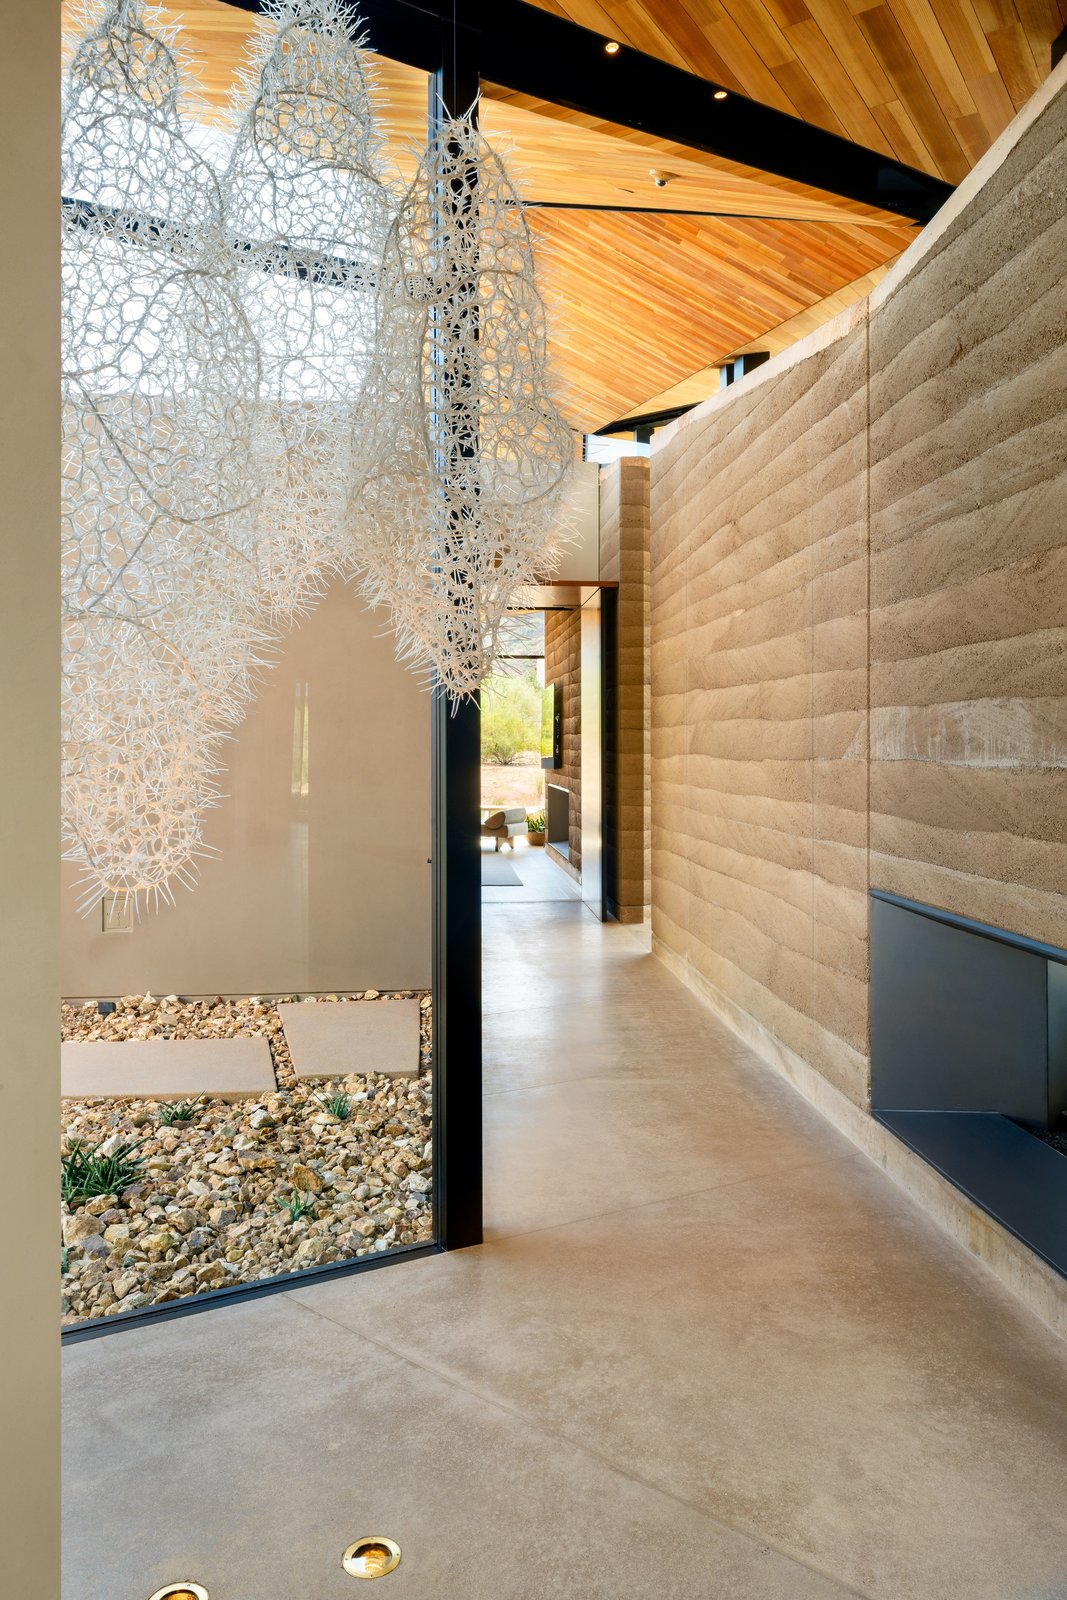 Dancing Light House rammed earth walls